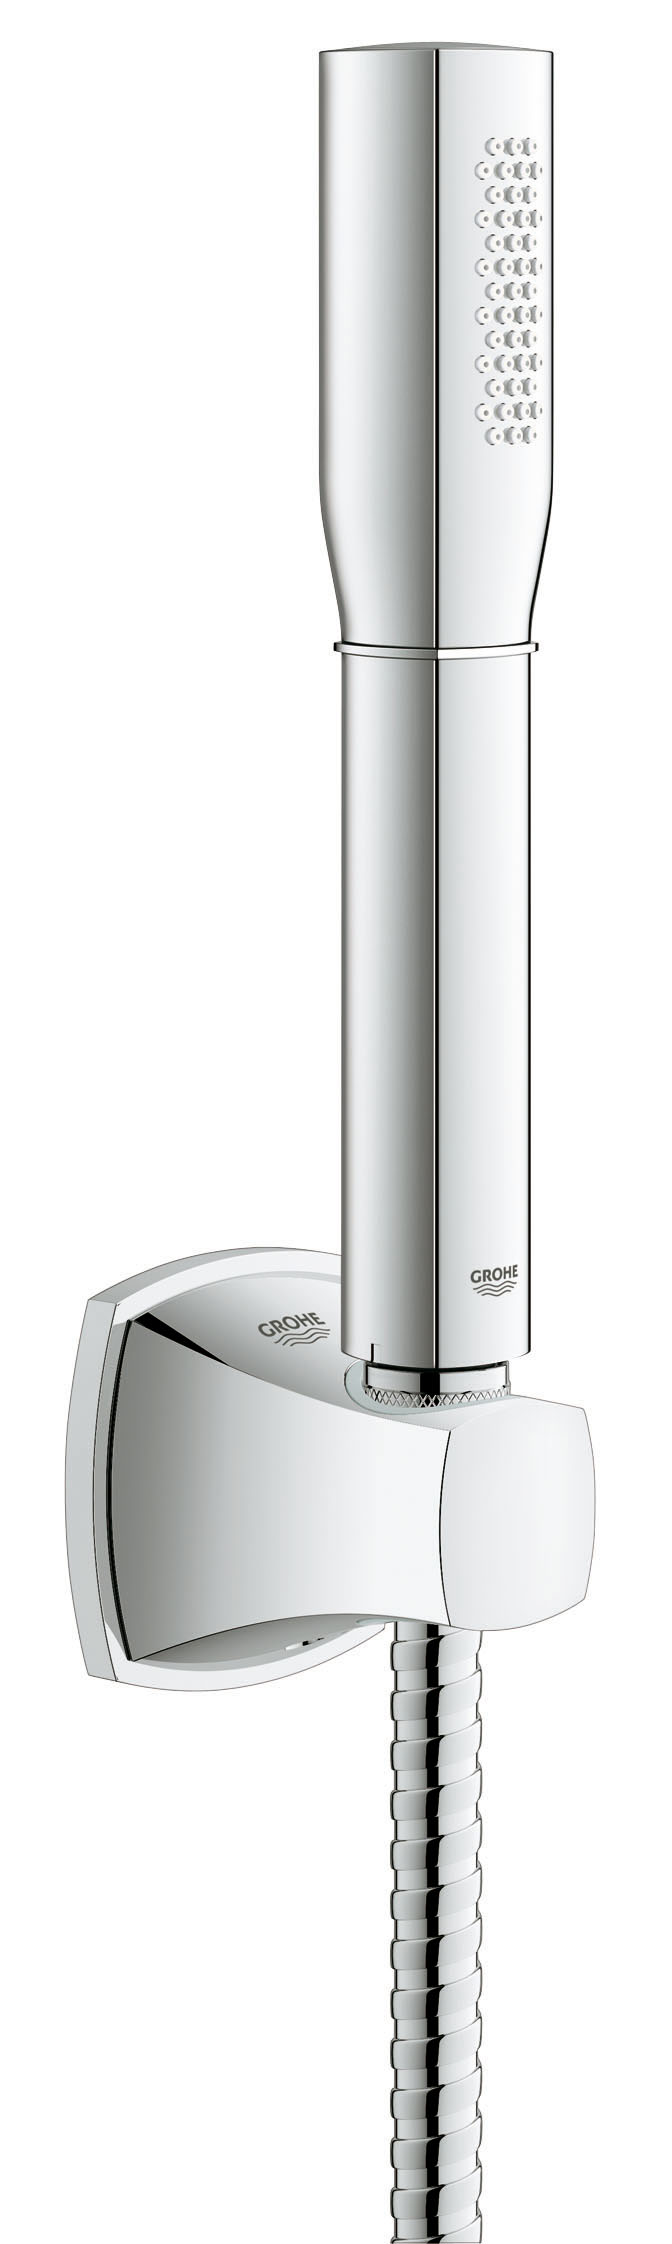 Набор душевой Grohe Rainshower grandera stick 27993000